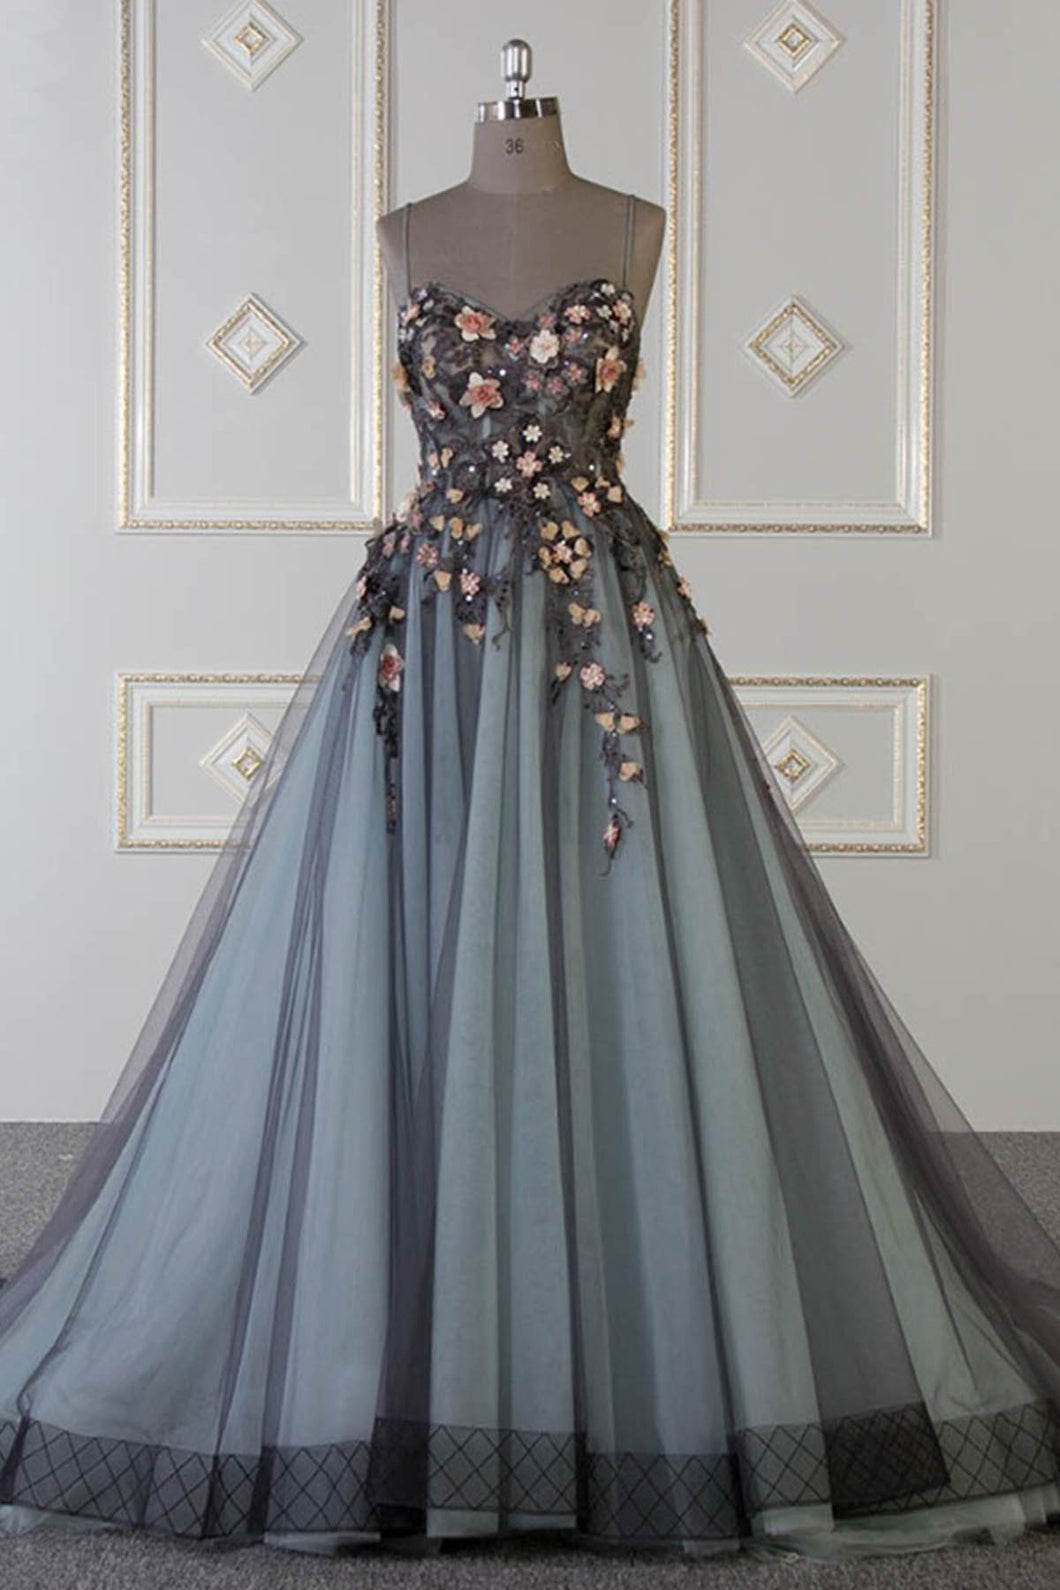 2019 Prom Dresses | 2019 Spring sweetheart neck A-line customize long tulle flower appliqué senior prom dress